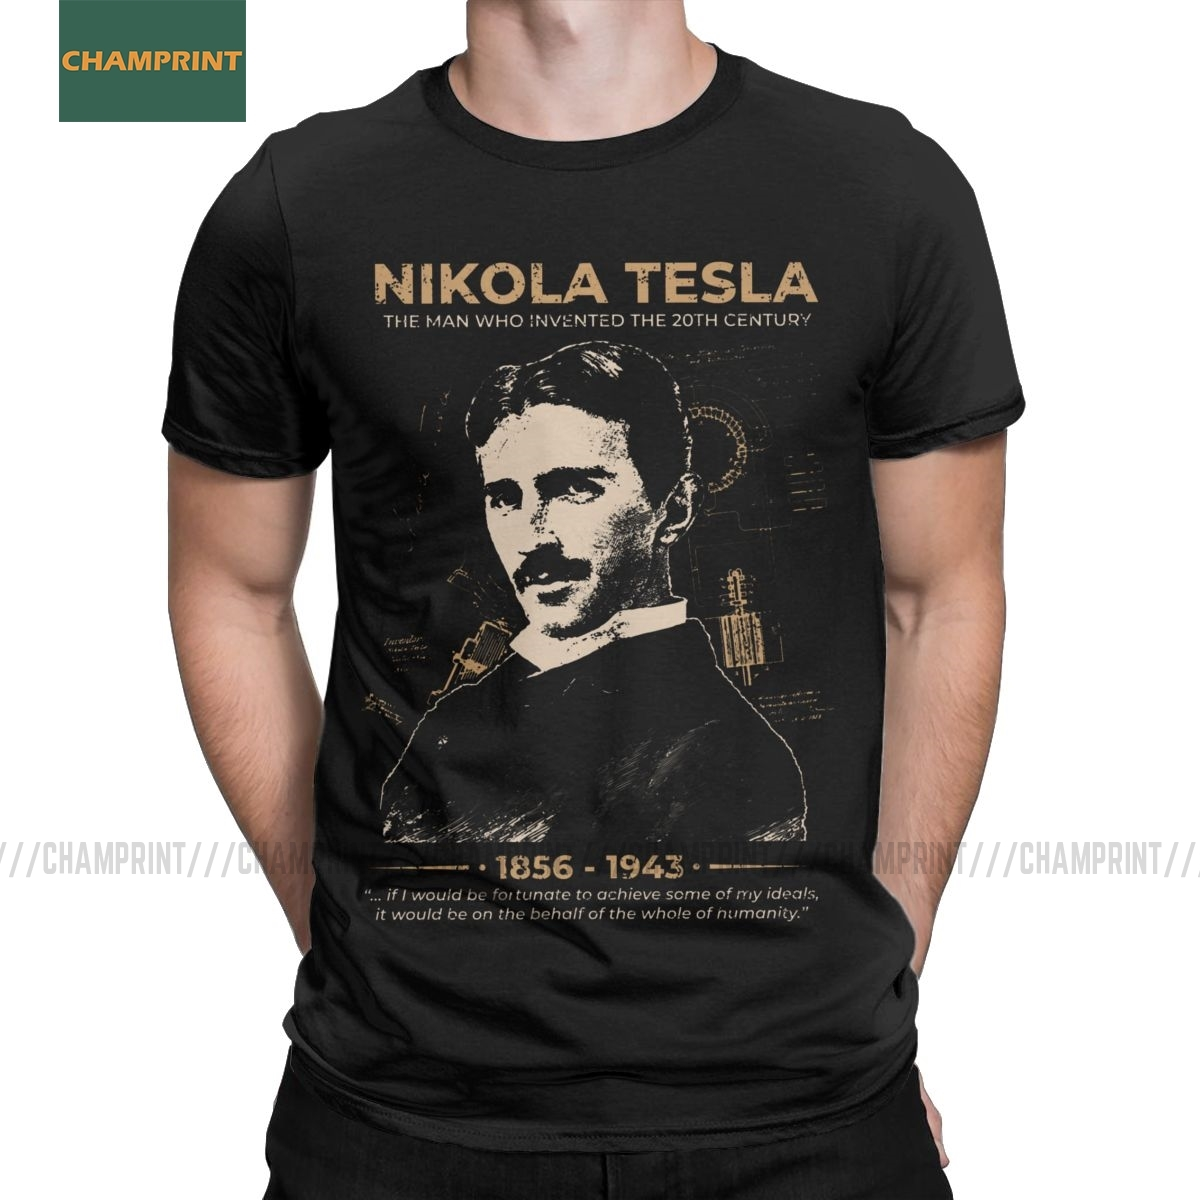 Nikola Tesla Men T Shirts Scientists Subject Inventor Physics Science Tees Short Sleeve T-Shirts 100% Cotton Party Tops